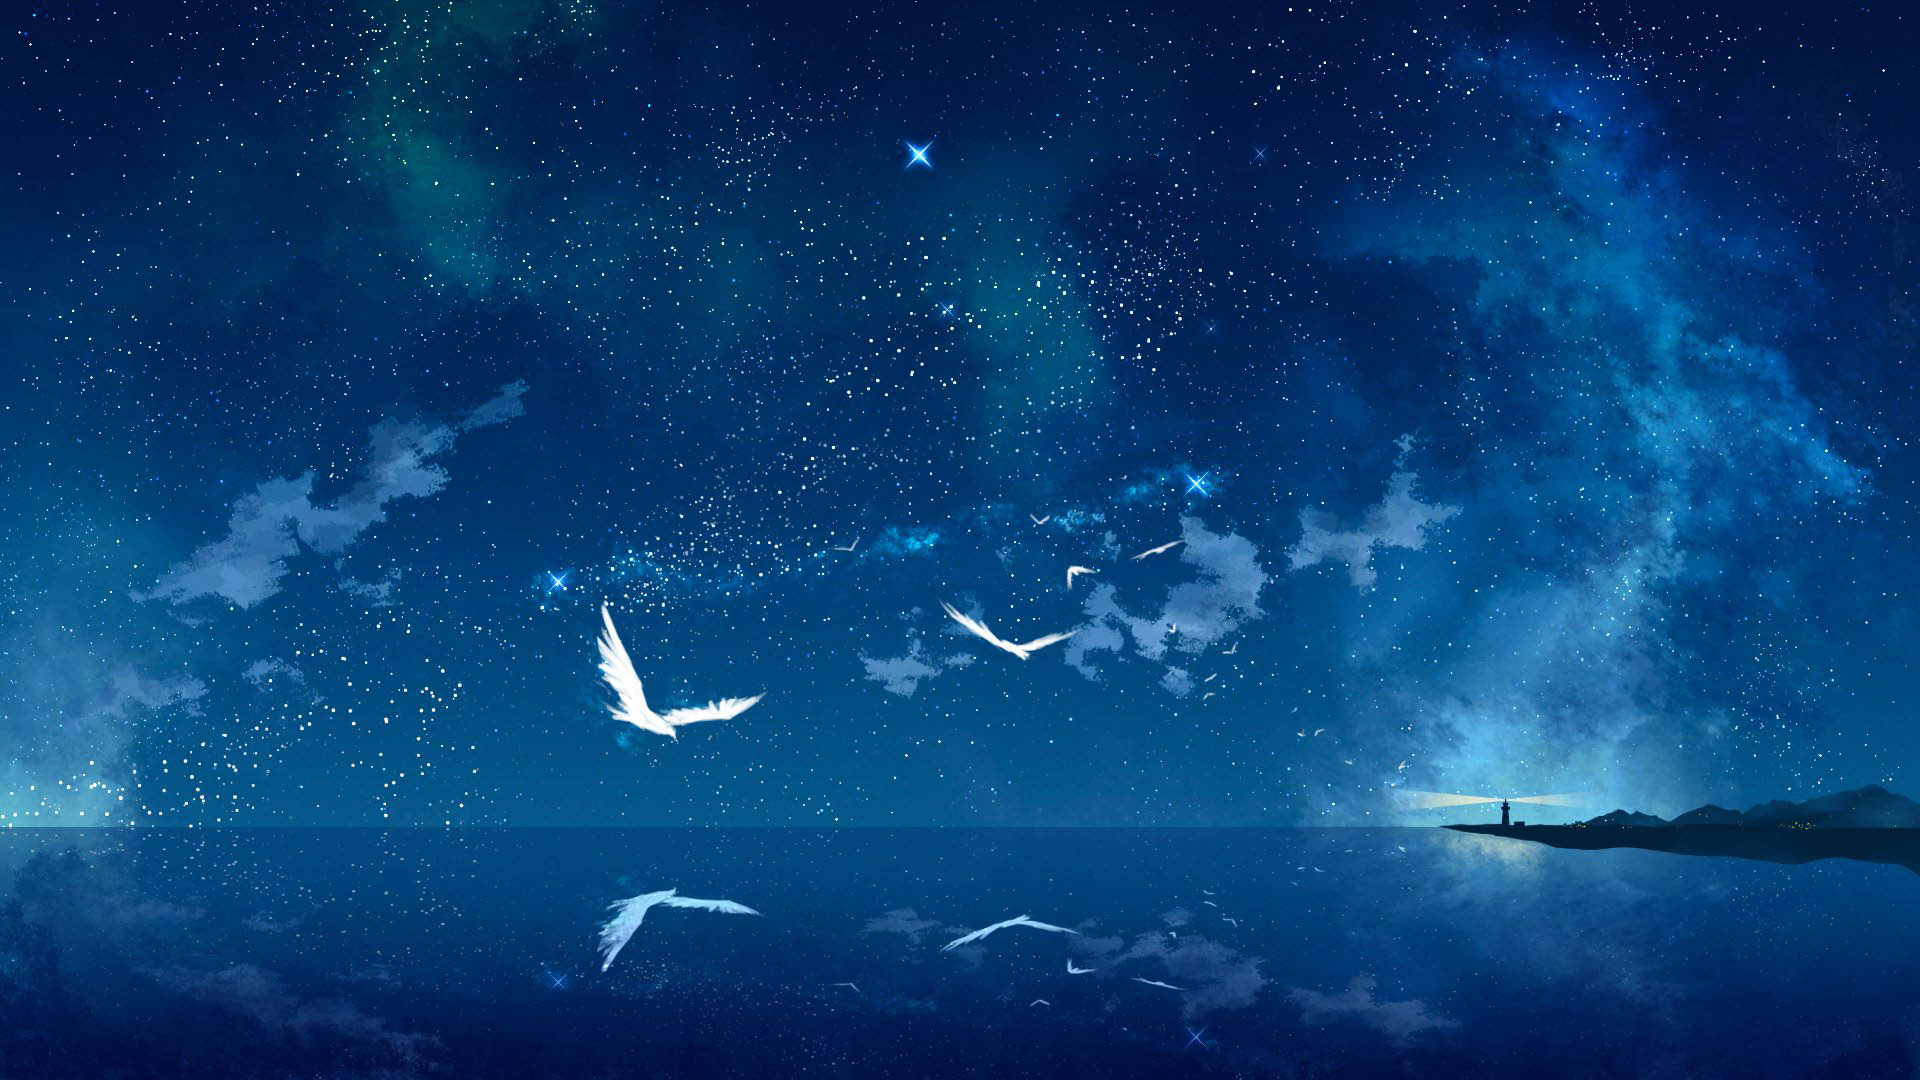 Animated sky wallpaper